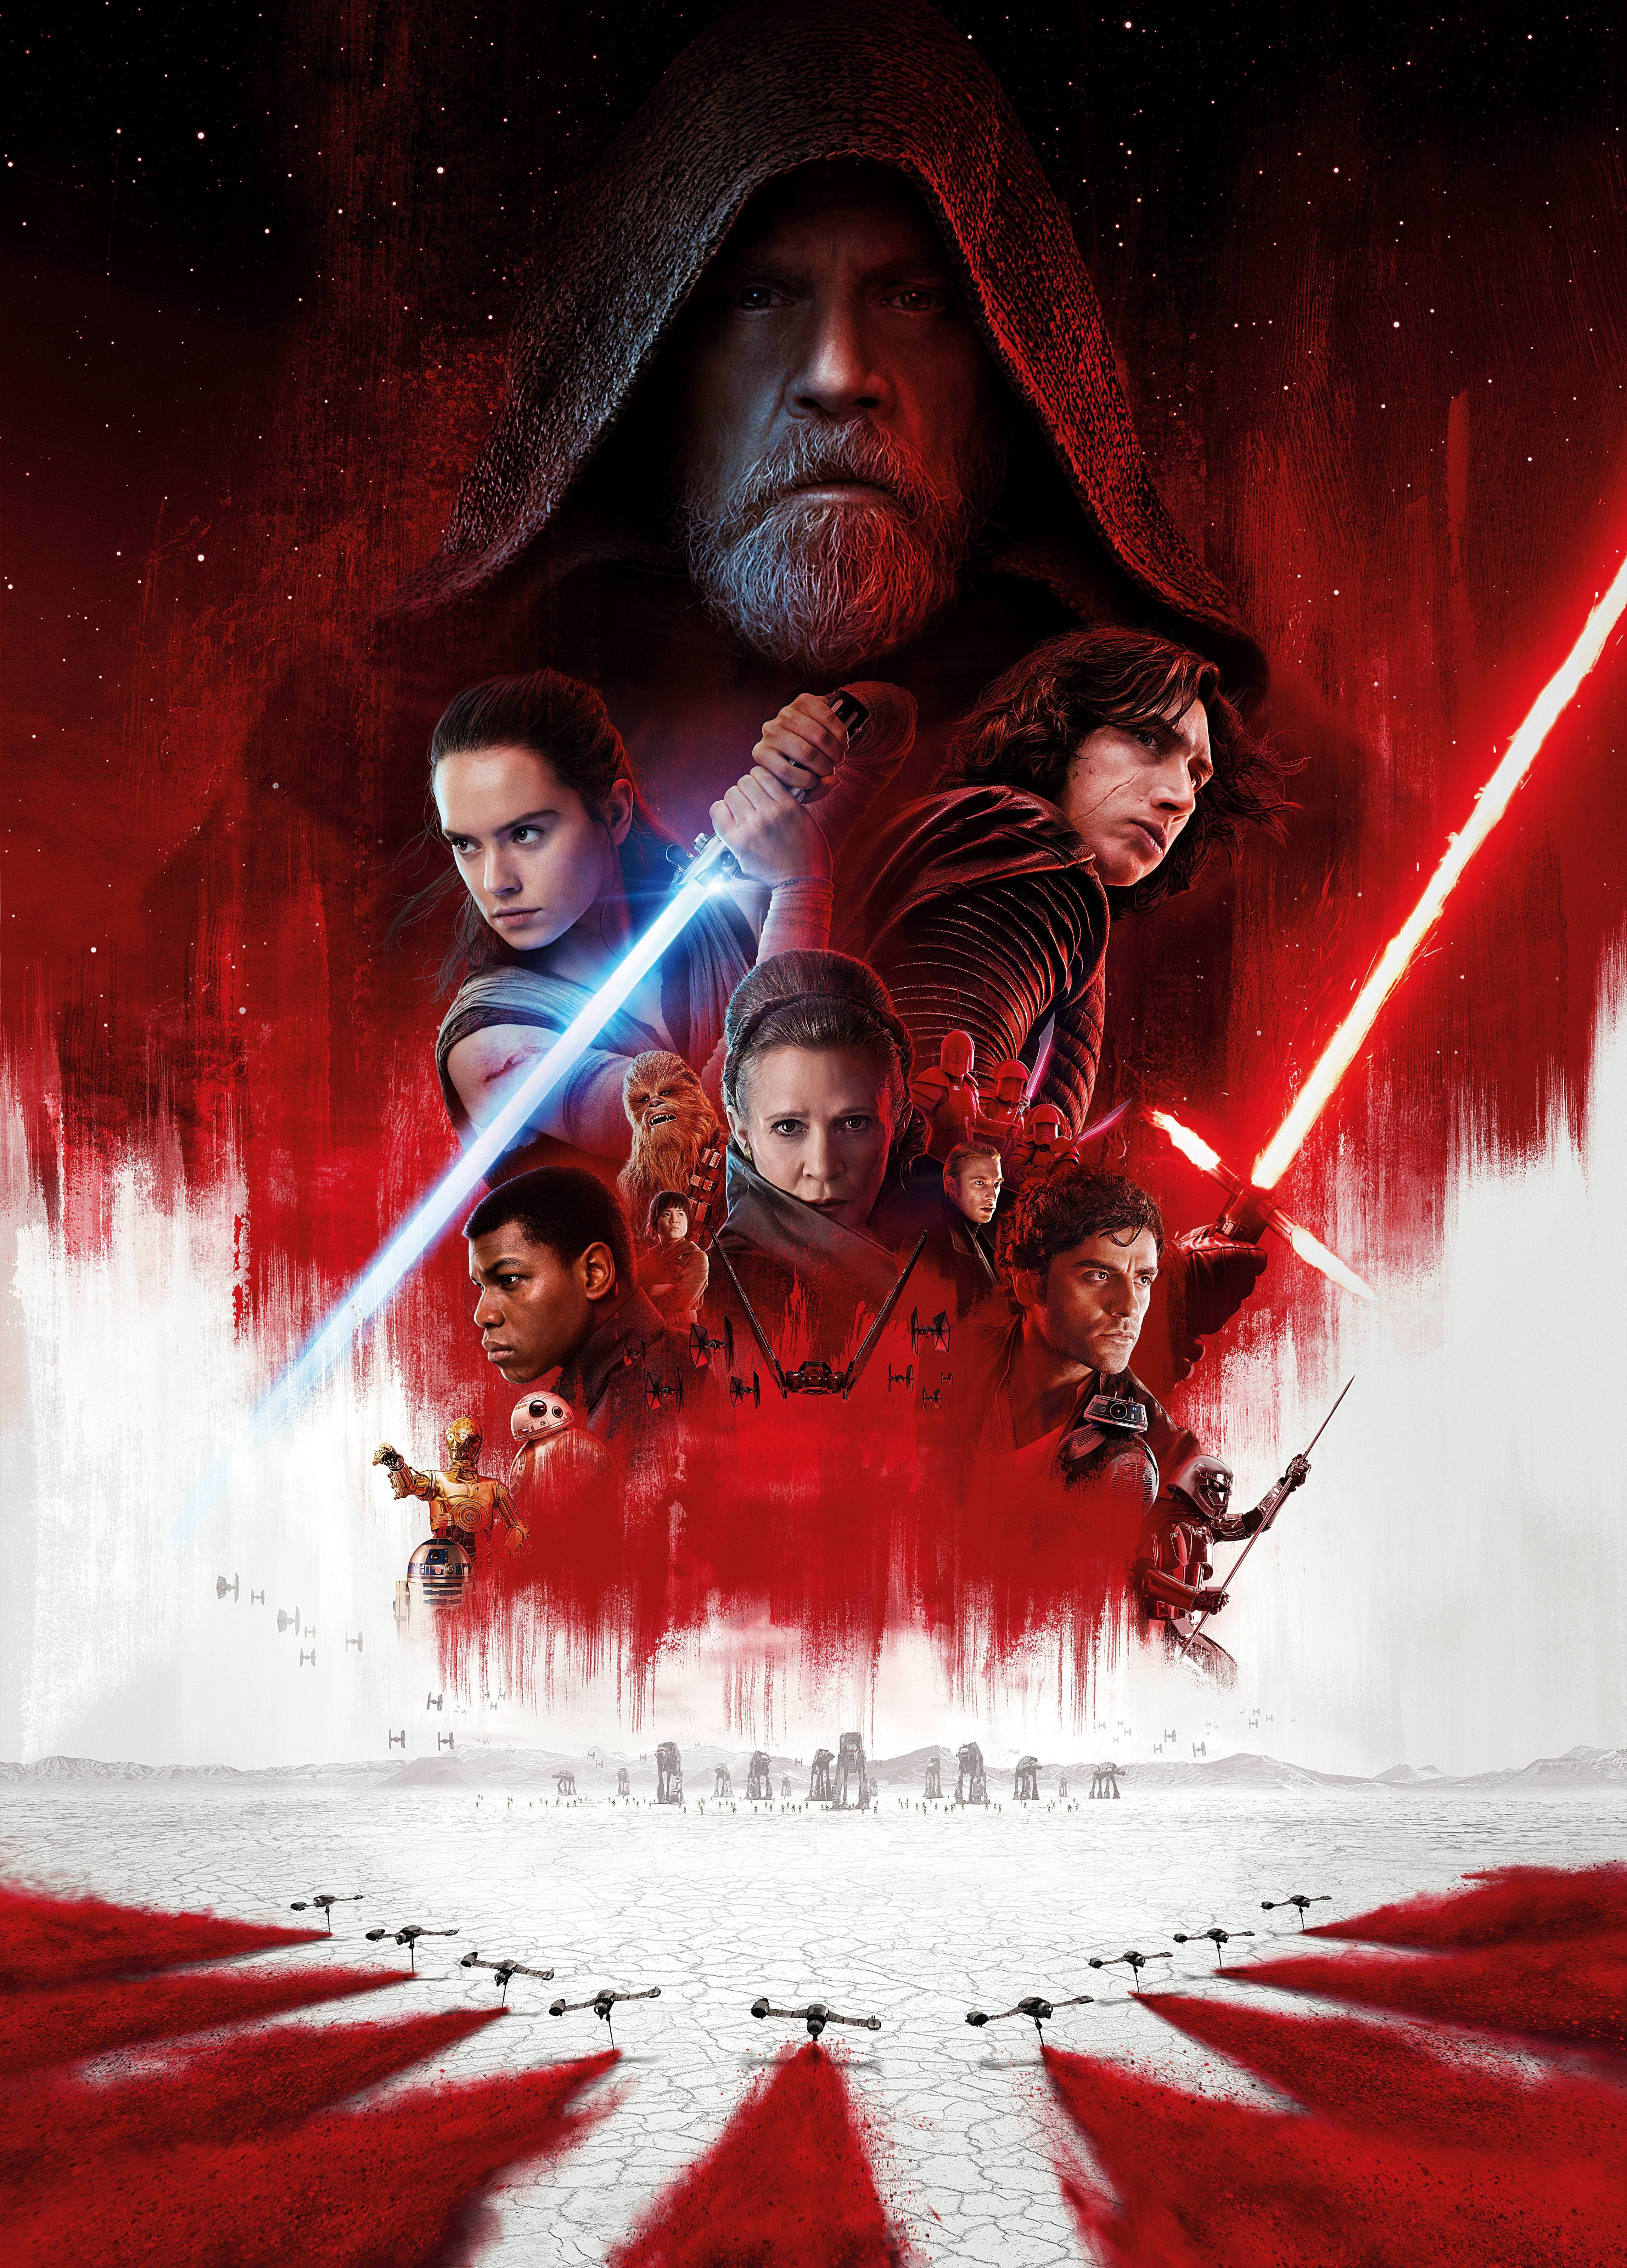 Star Wars The Last Jedi Poster Textless Variant Official Not A Fan Edit Star Wars Episodes Star Wars Poster Last Jedi